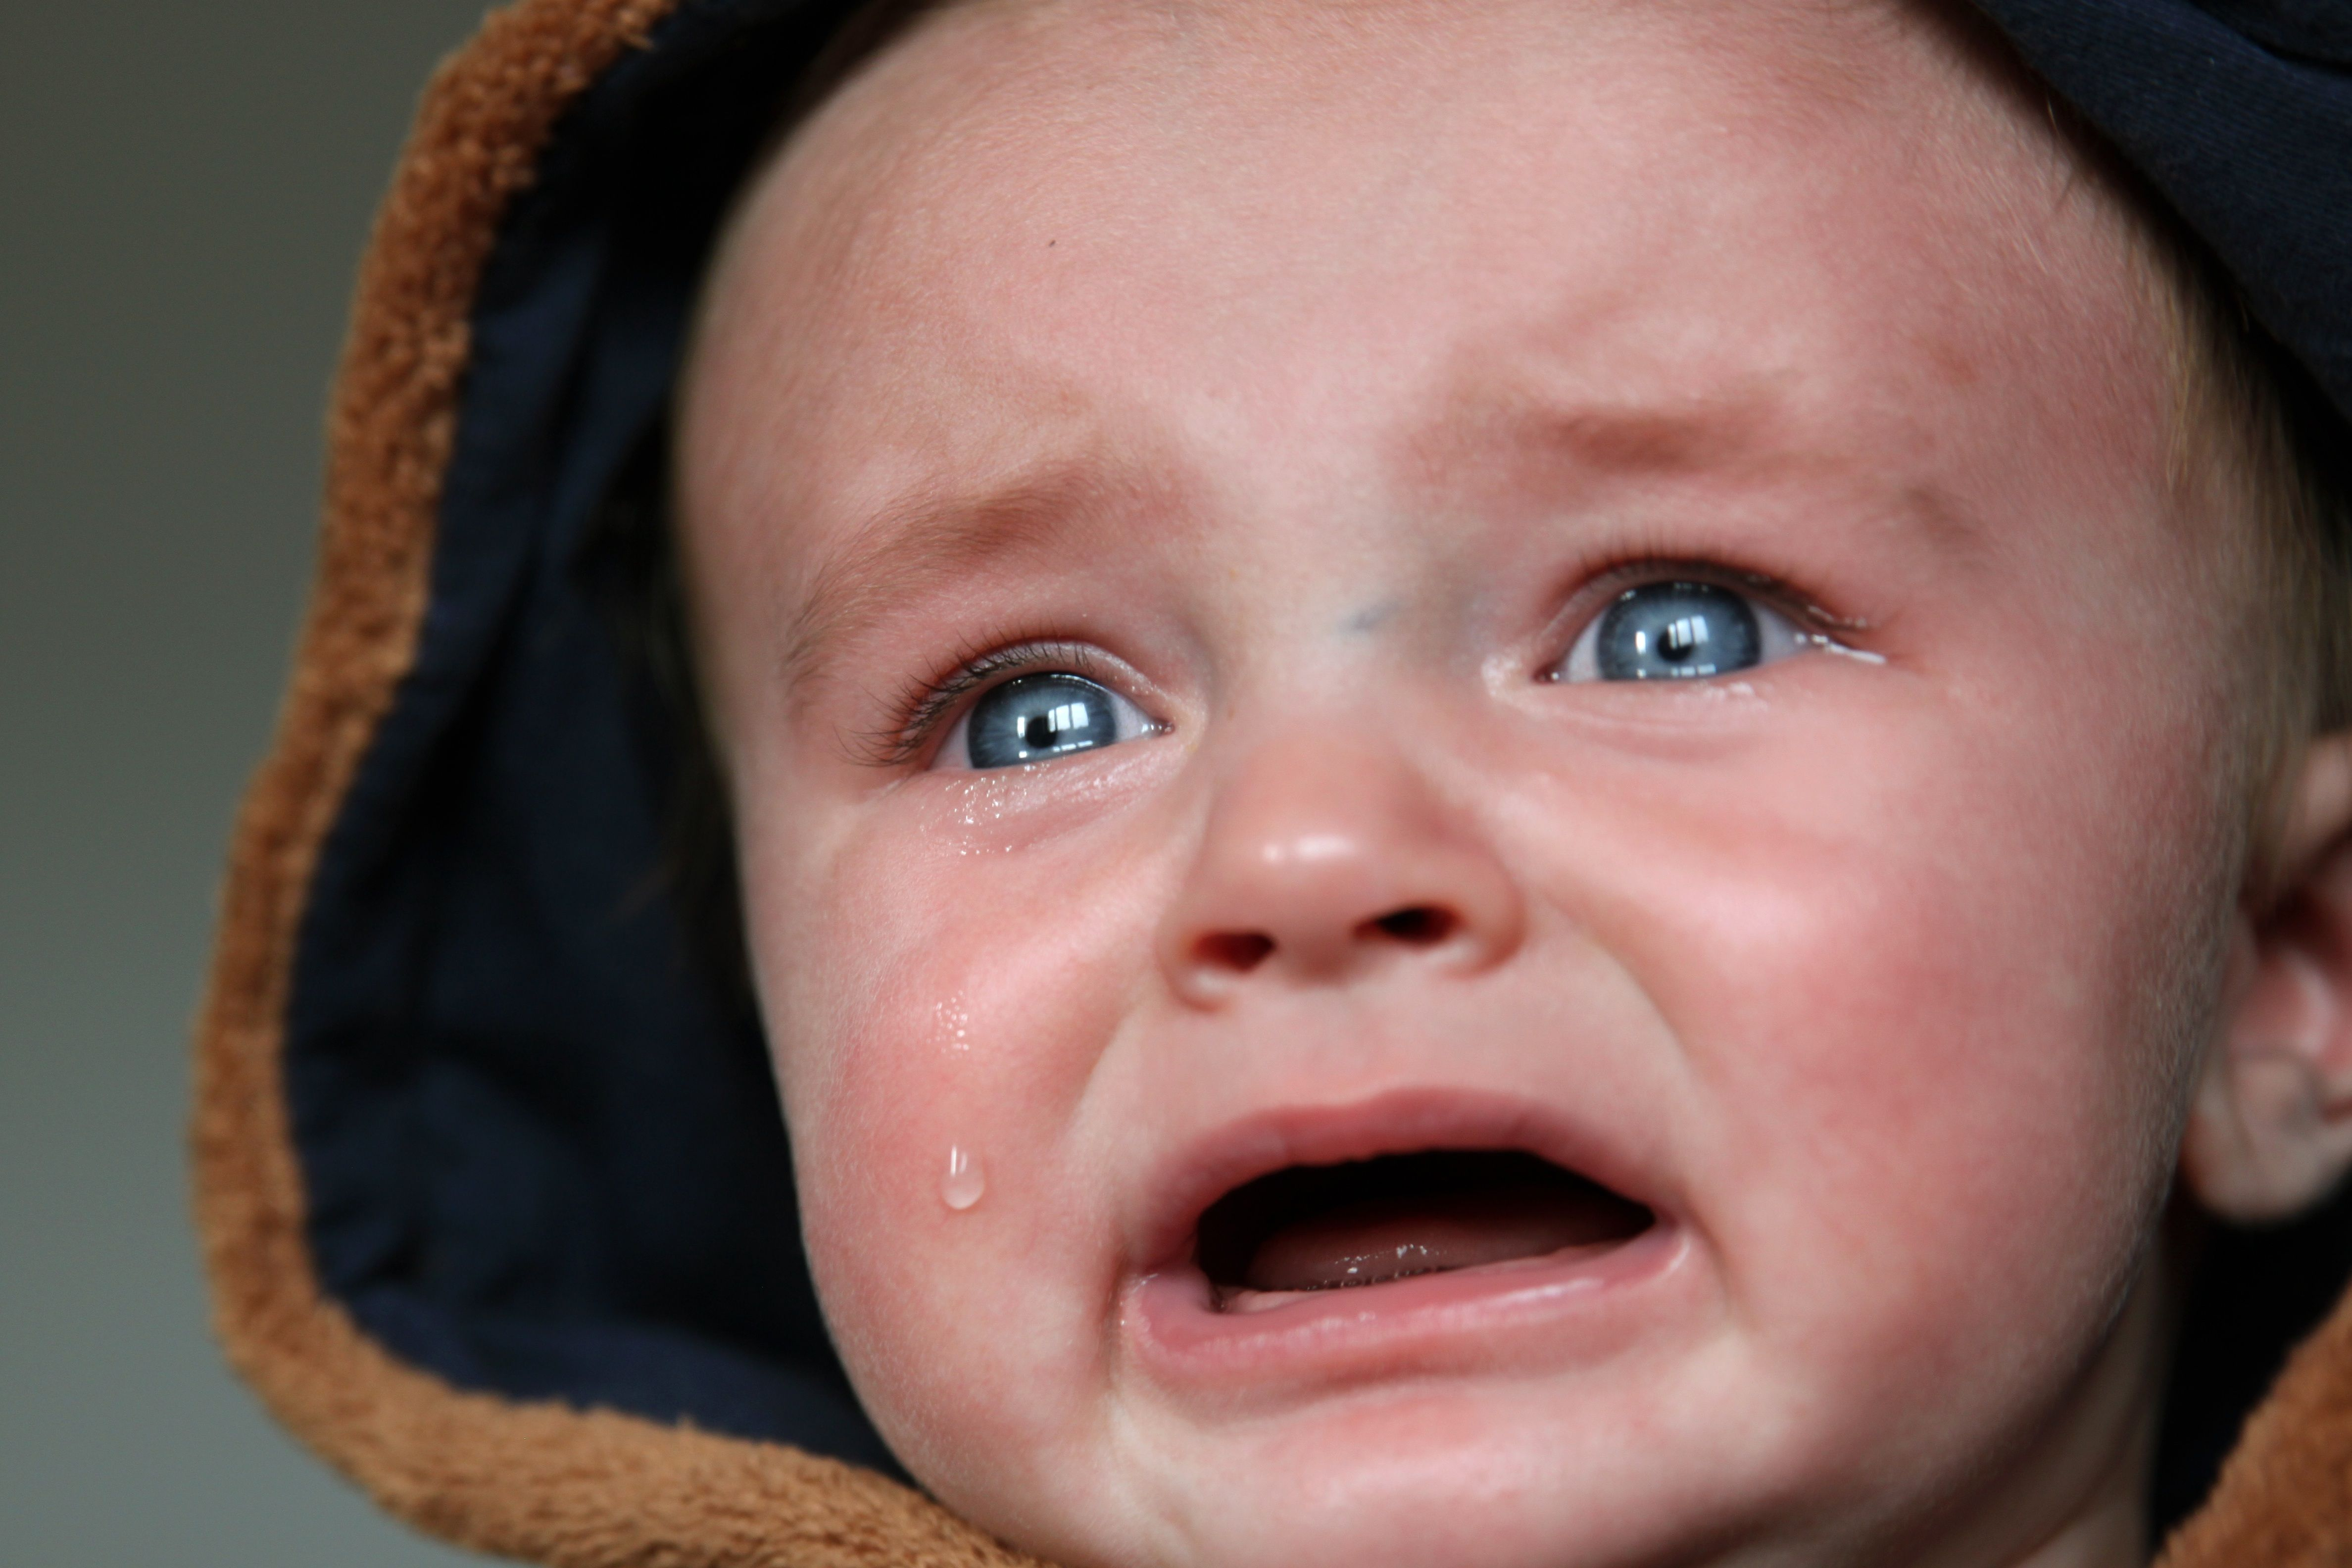 Let them cry it out is a common advice for new moms. Sleep deprived, new moms often allow babies to CIO, but there are many reasons why I don't cry it out.